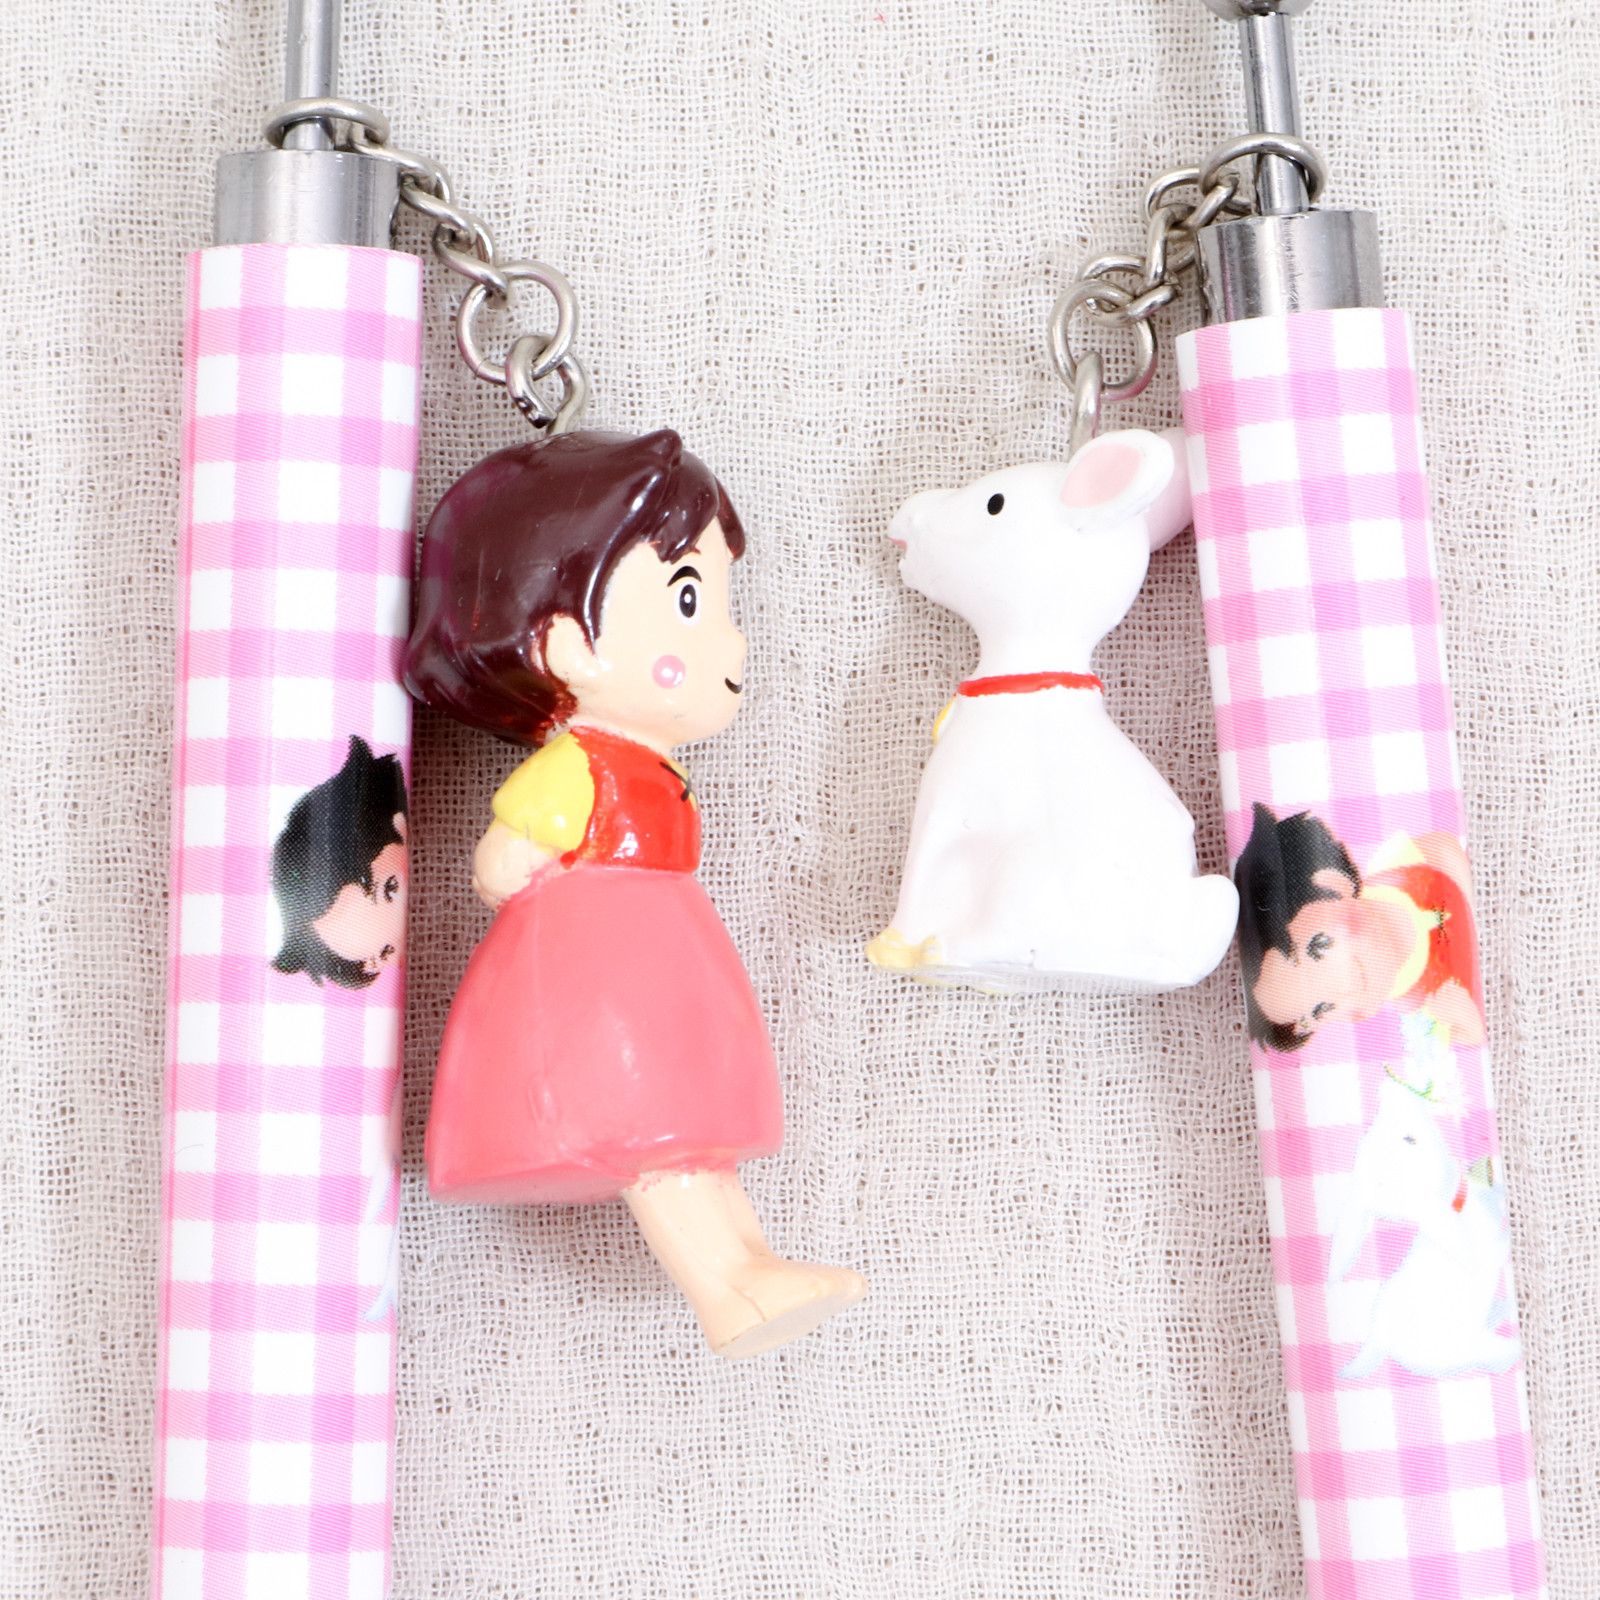 [JUNK!!] Heidi Girl of the Alps Heidi & Yuki chan Mechanical pencil & Point pen 2pc set JAPAN ANIME